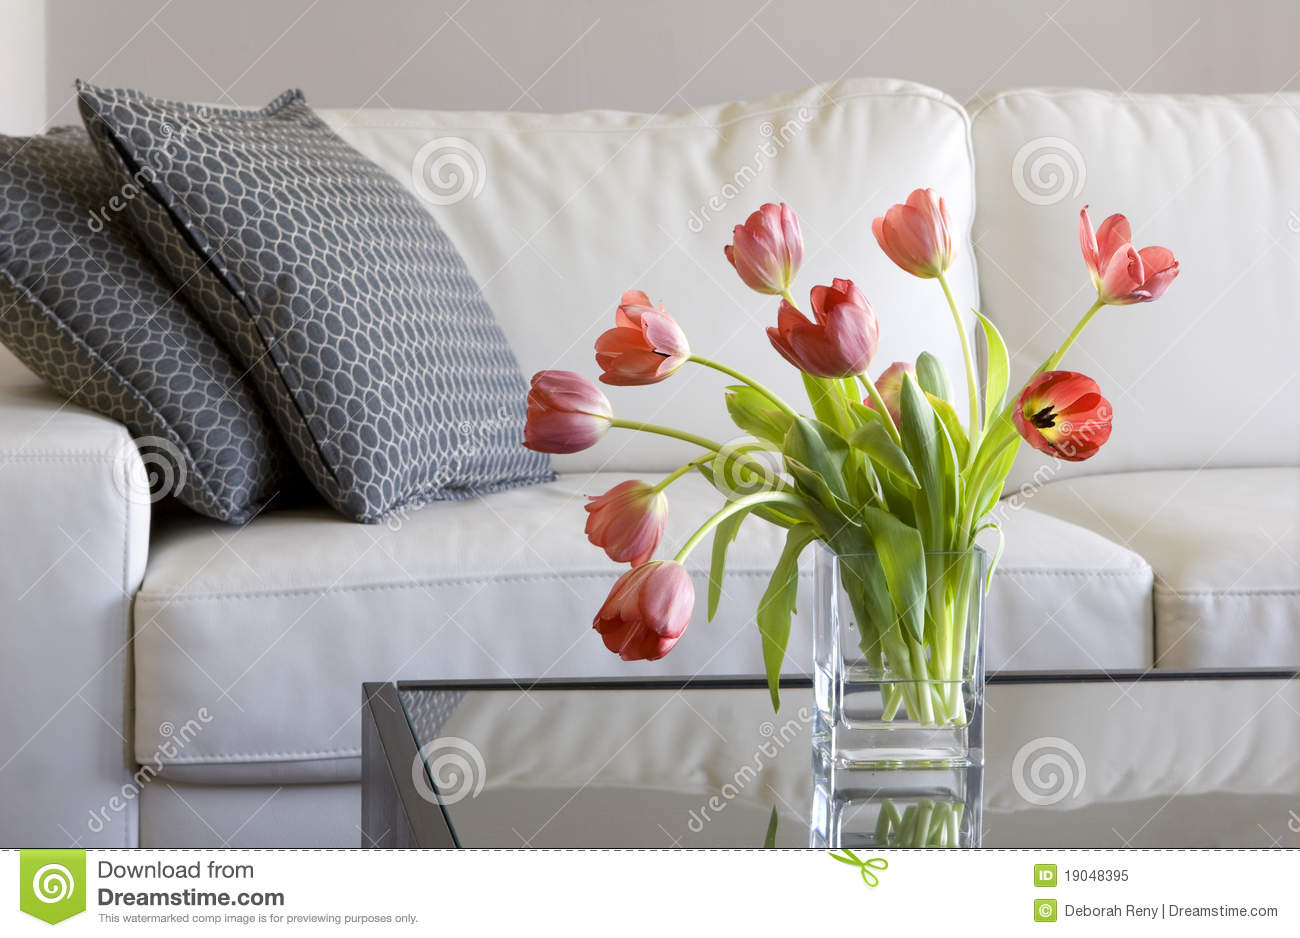 Red Tulips In Modern Living Room   Home Decor. Elegant, Life.